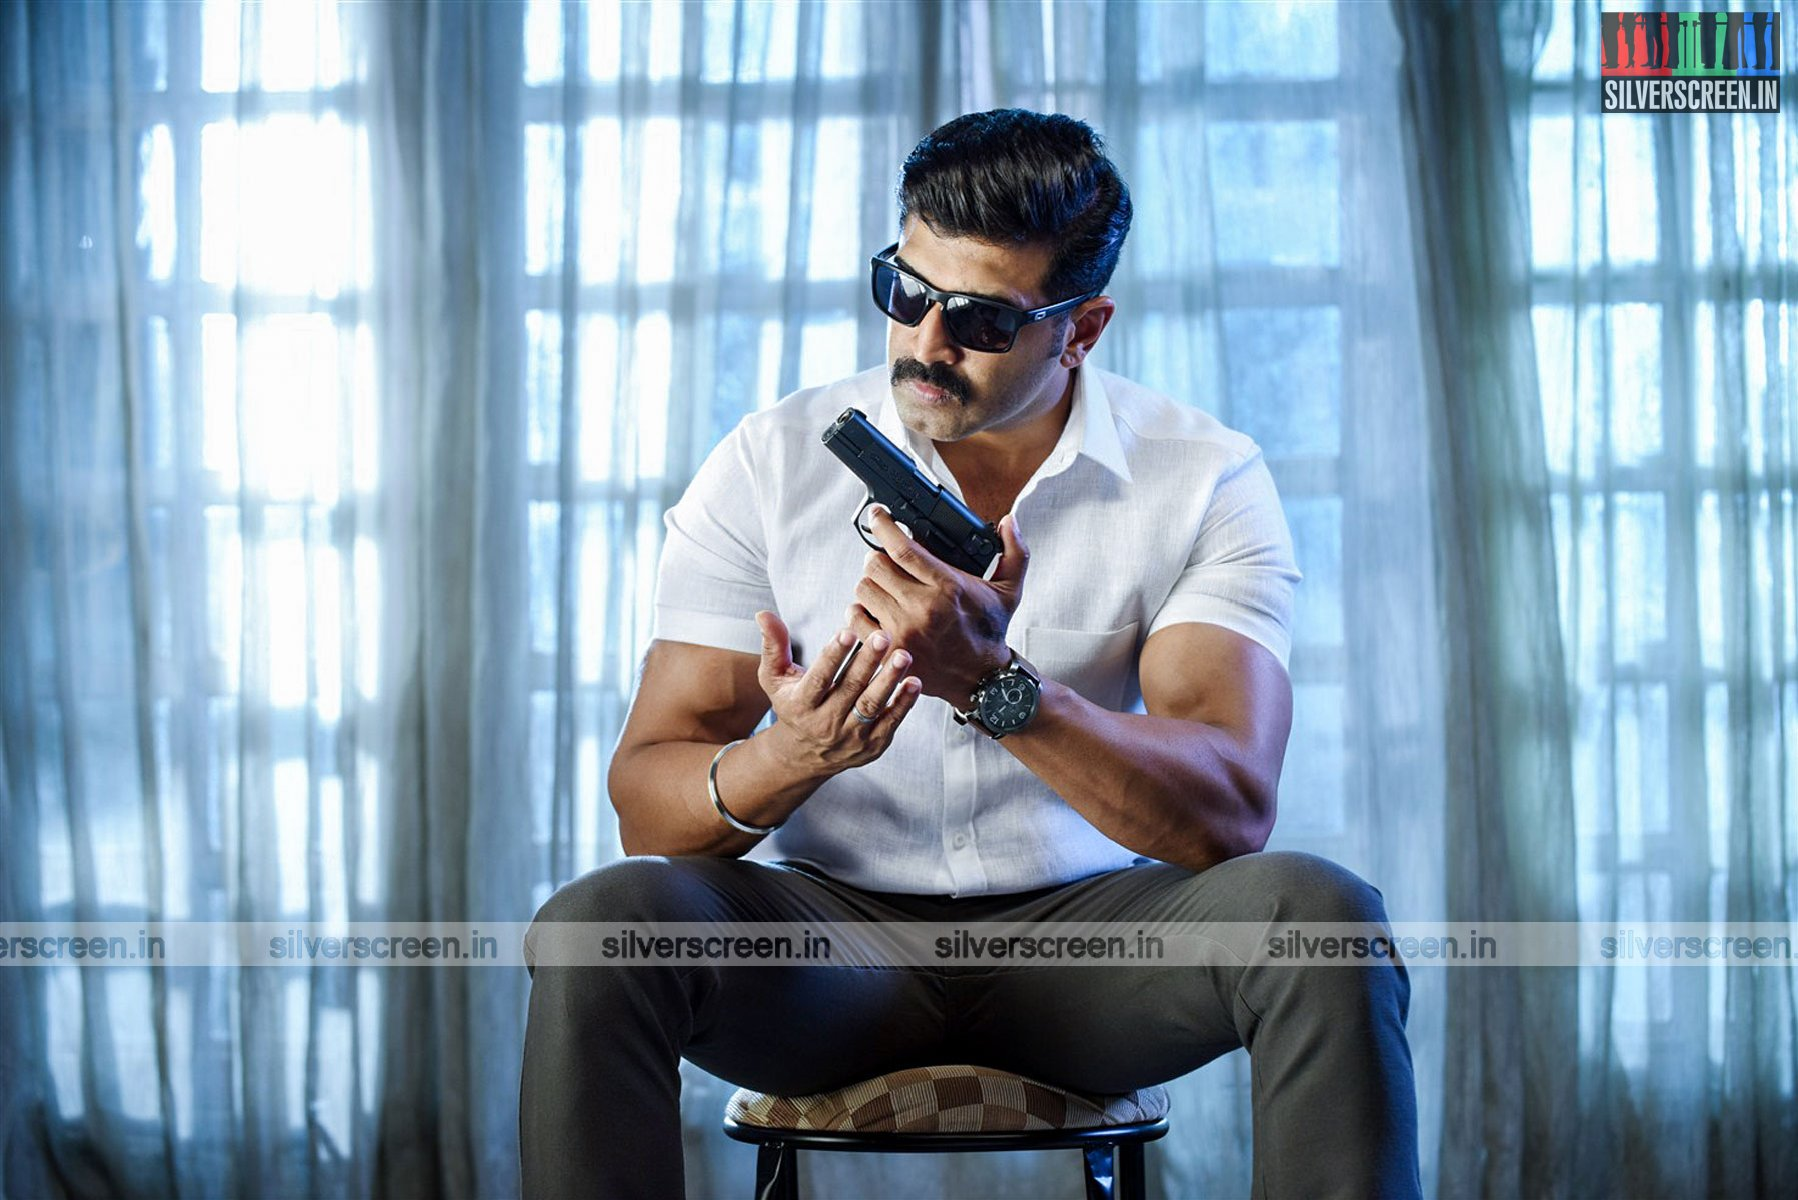 Arun vijay shirtless photos 178 best Adolf Hitler (Colour) images on Pinterest Germany, Colors